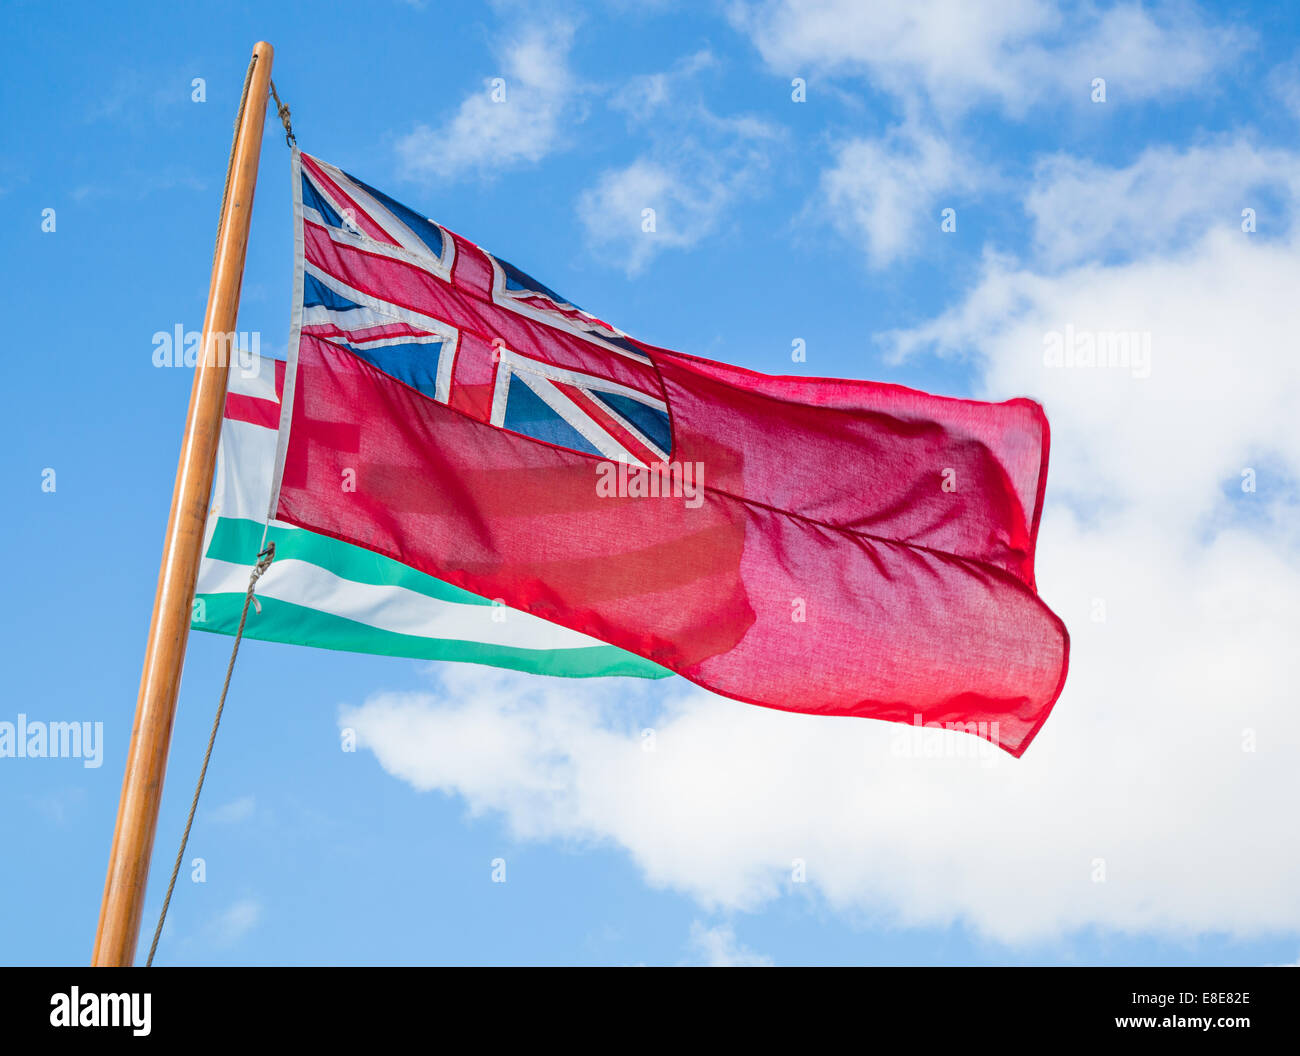 The Red Ensign or ' Red Duster ' flag hoisted on the mast of a sailing boat - Stock Image